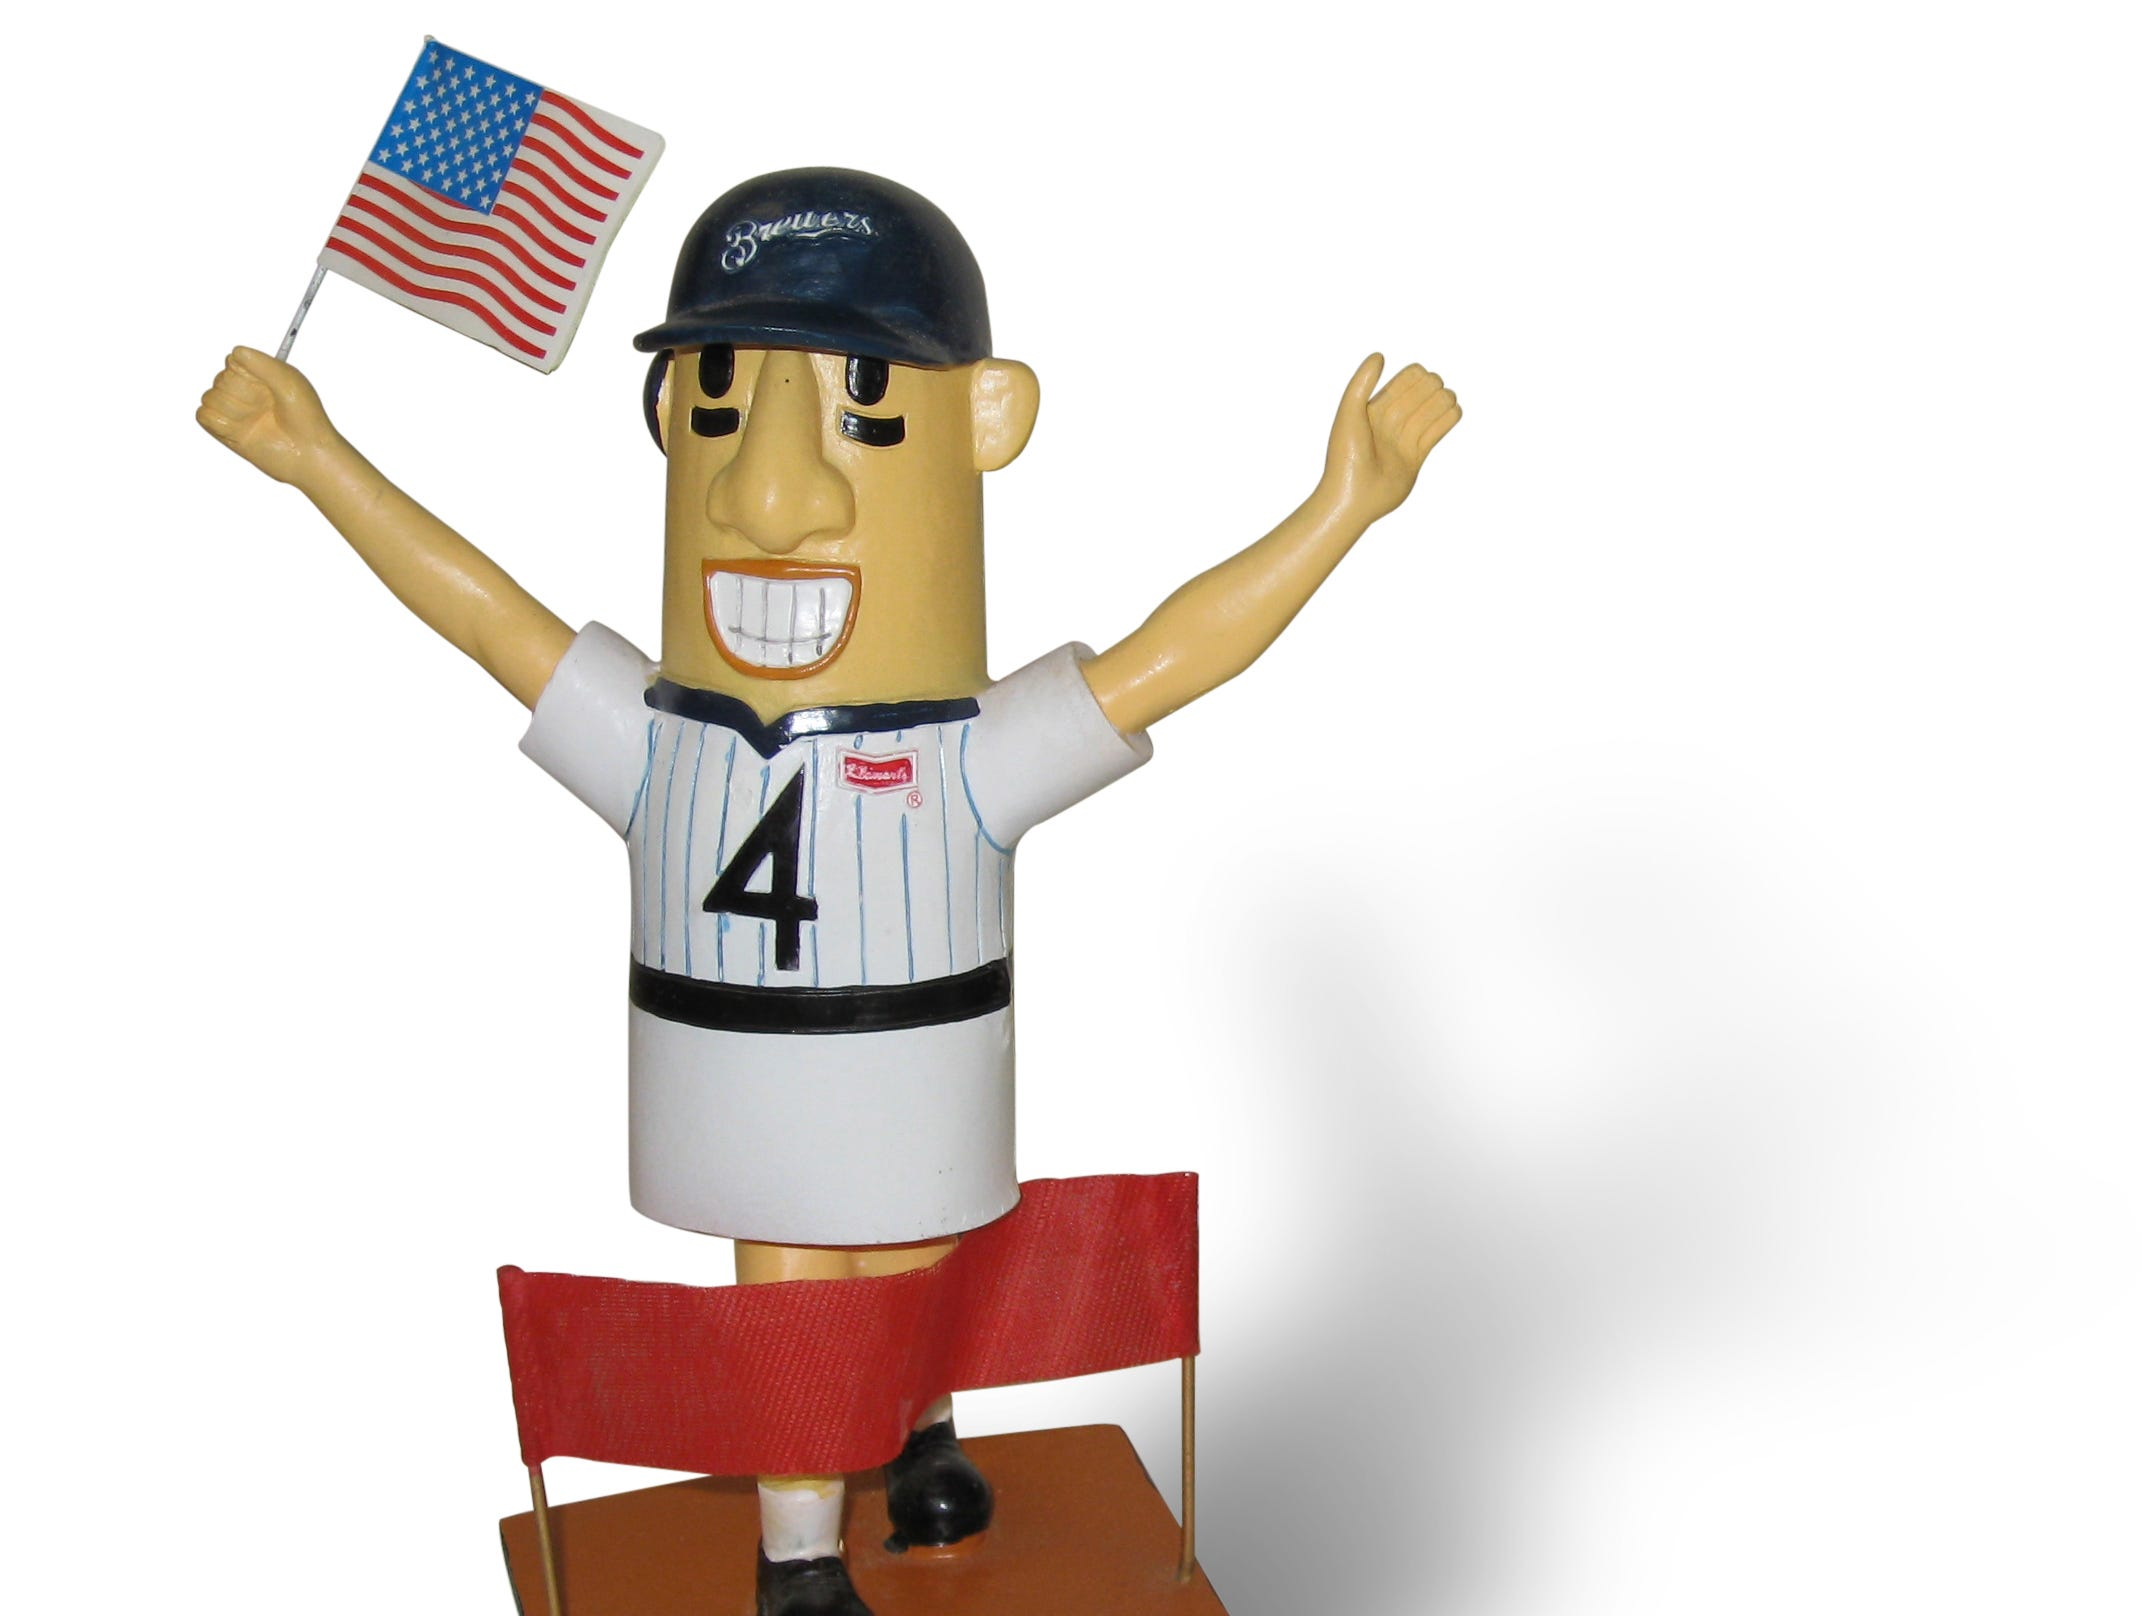 Milwaukee Brewers' Hot Dog sausage bobblehead